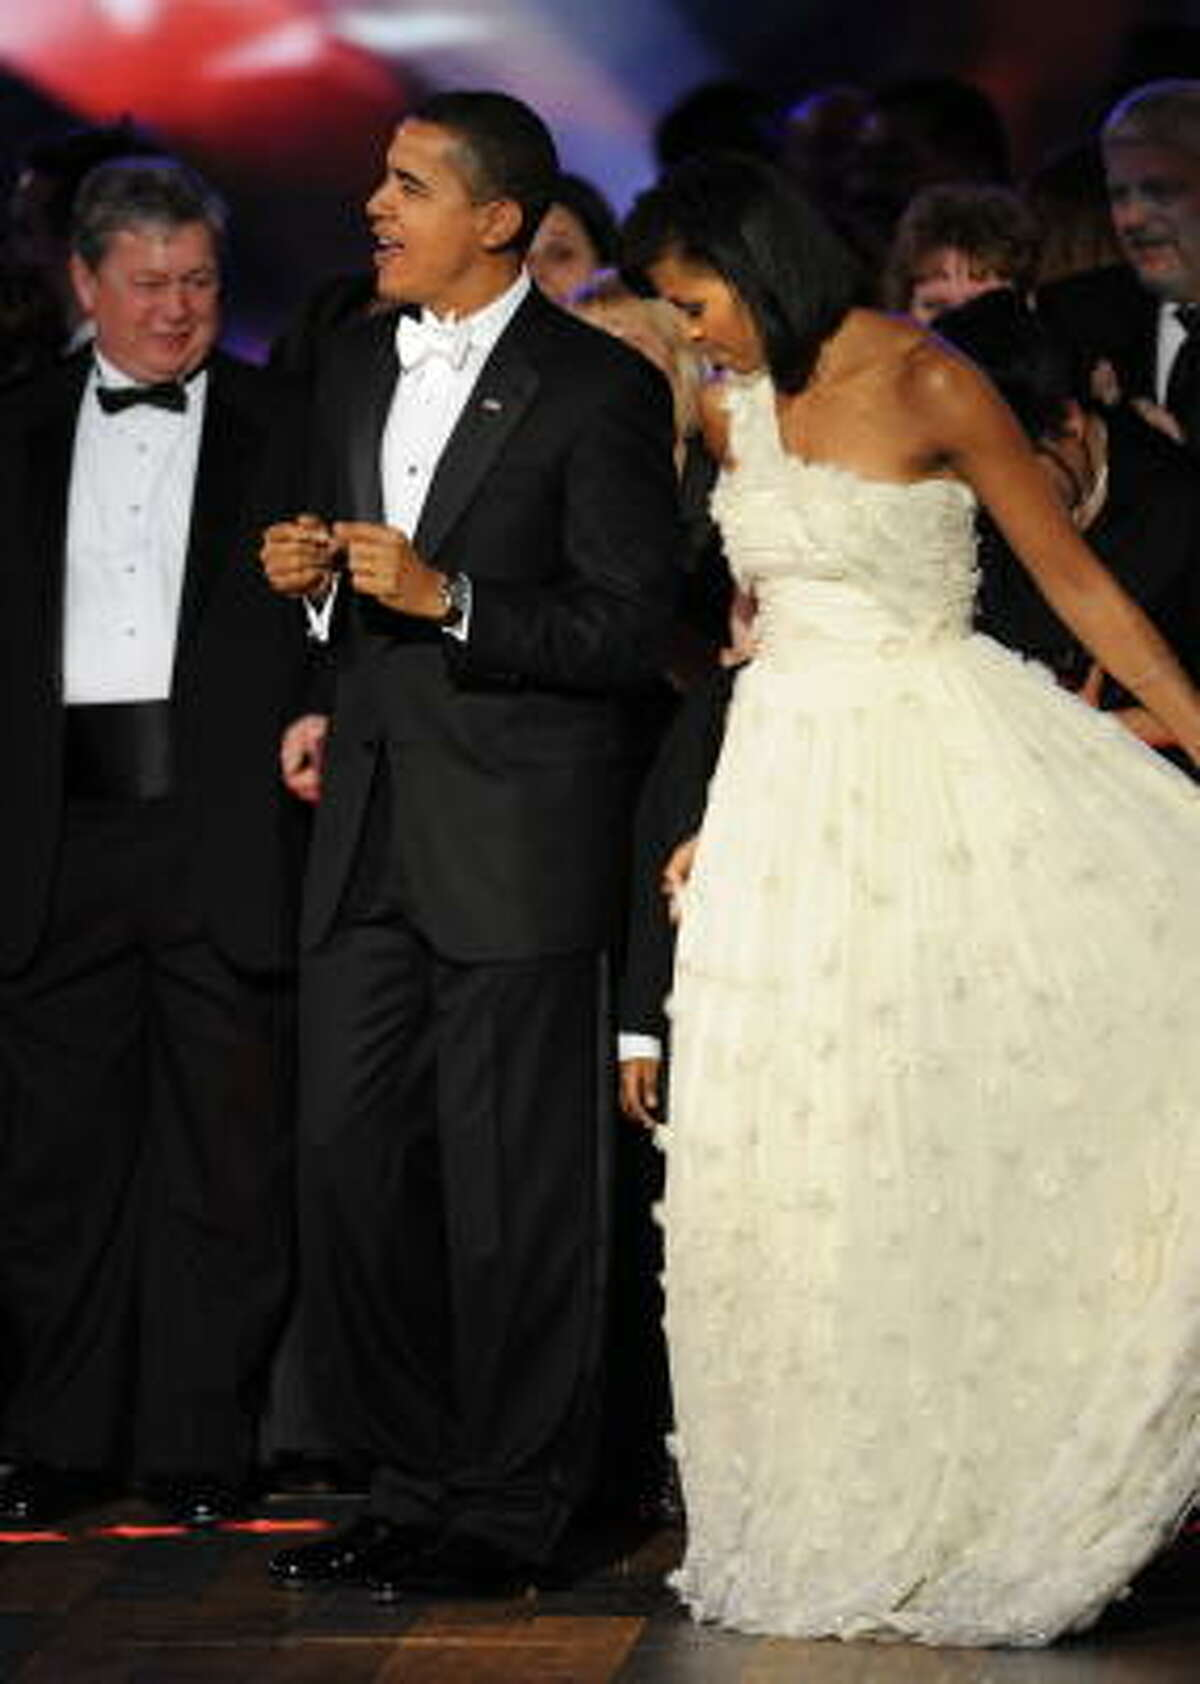 Michelle Obama chose a soft white, off-shoulder gown for the Neighborhood Ball Tuesday in Washington.